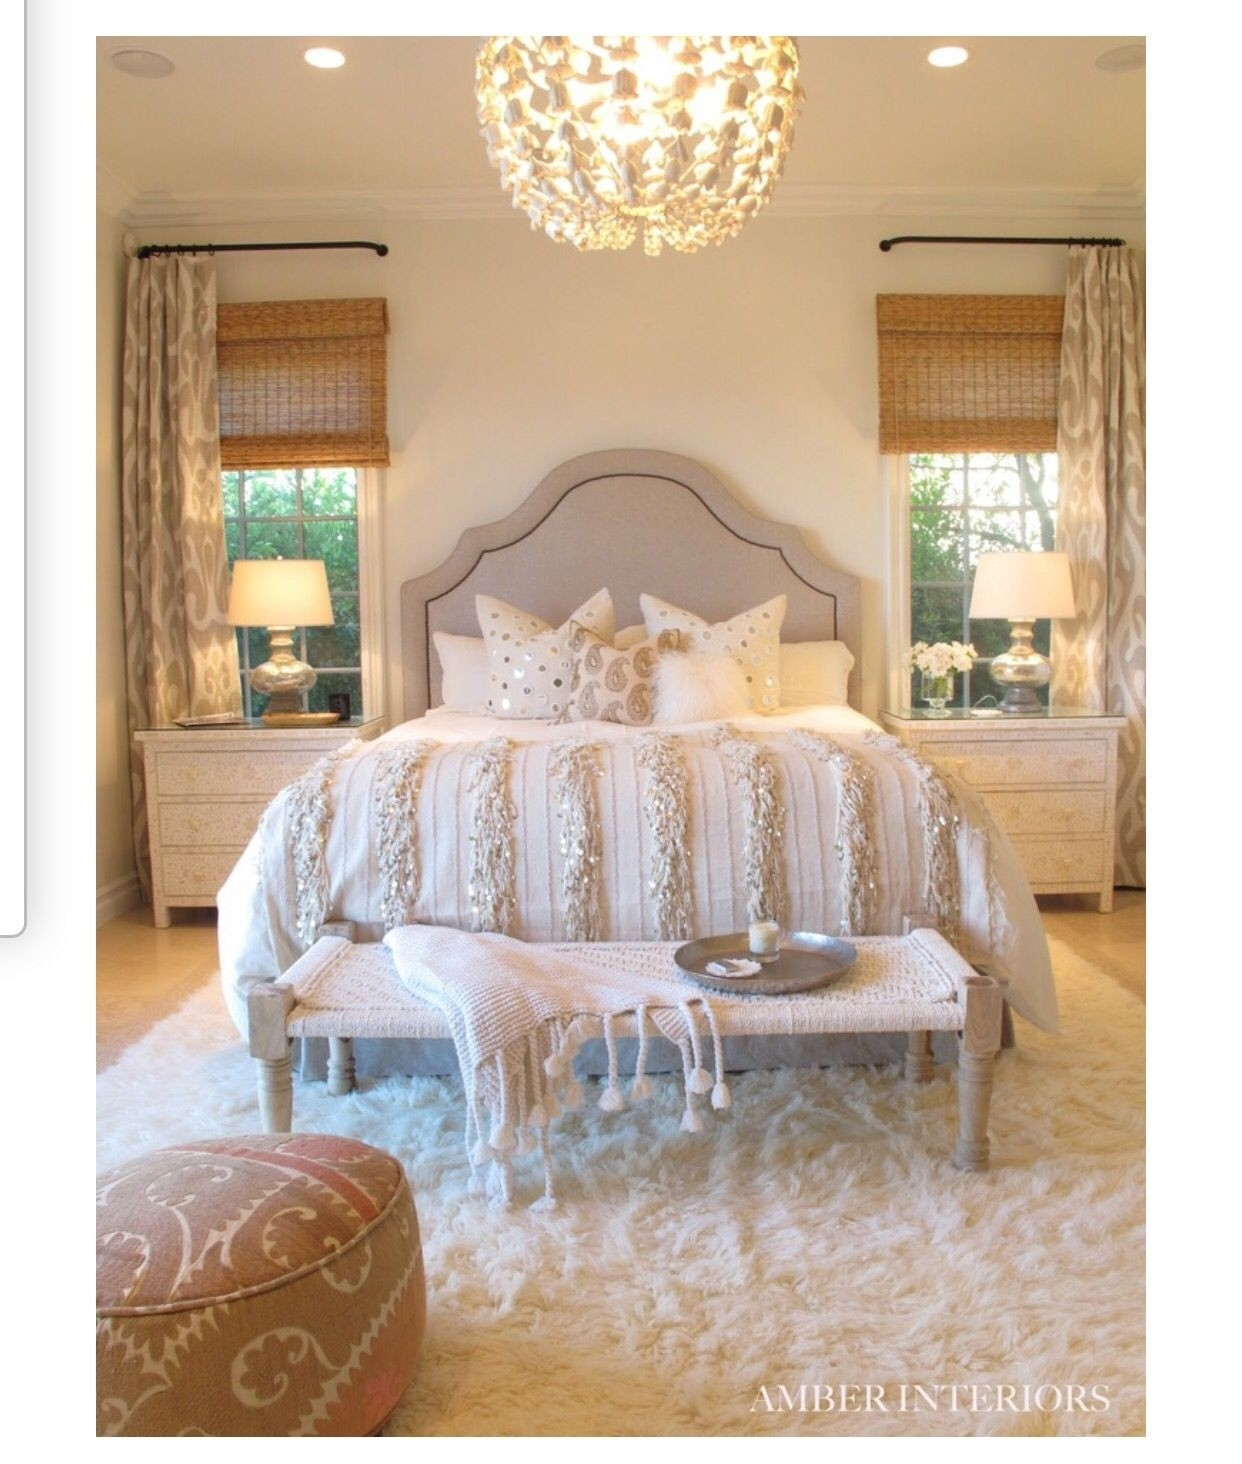 Single Curtain Panel Ideas On Foter,Two Story 2 Story 5 Bedroom House Floor Plans